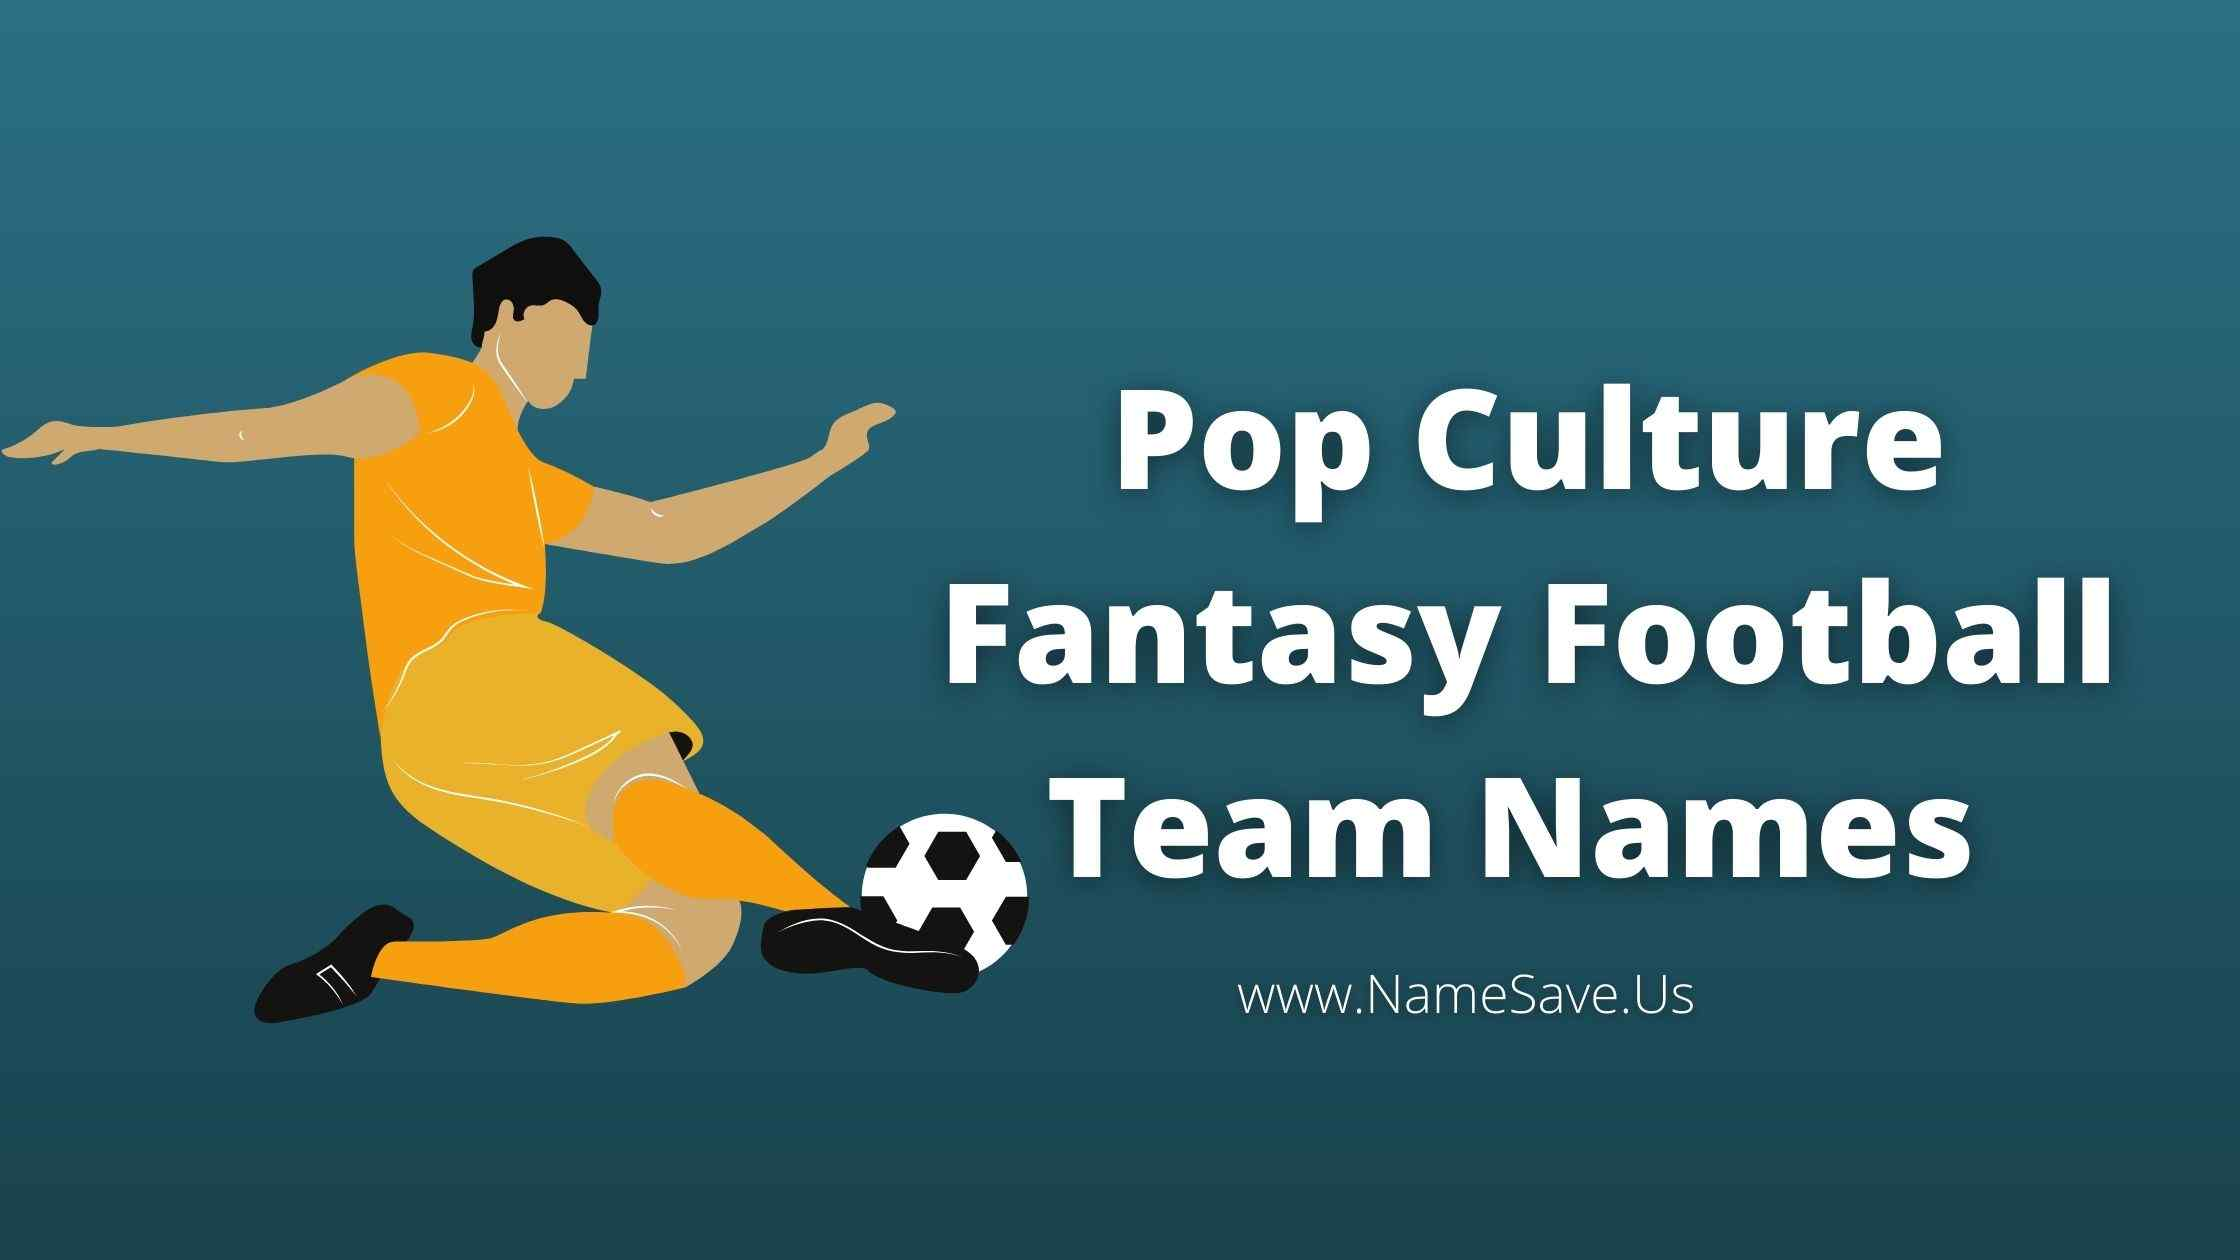 Pop Culture Fantasy Football Team Names